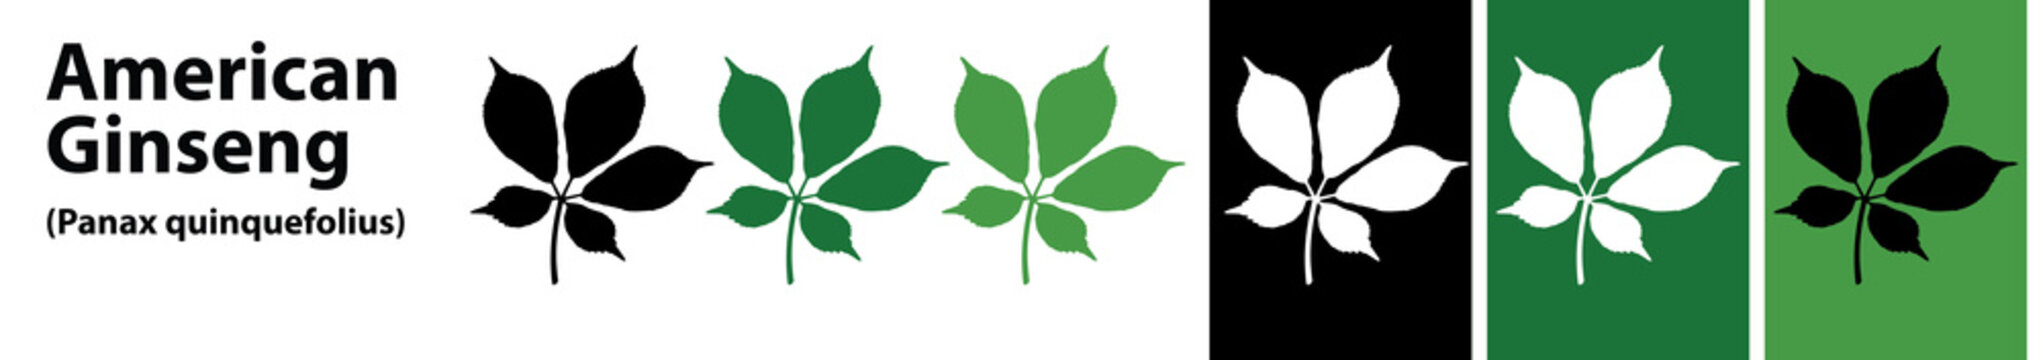 american ginseng leaves vector different colors